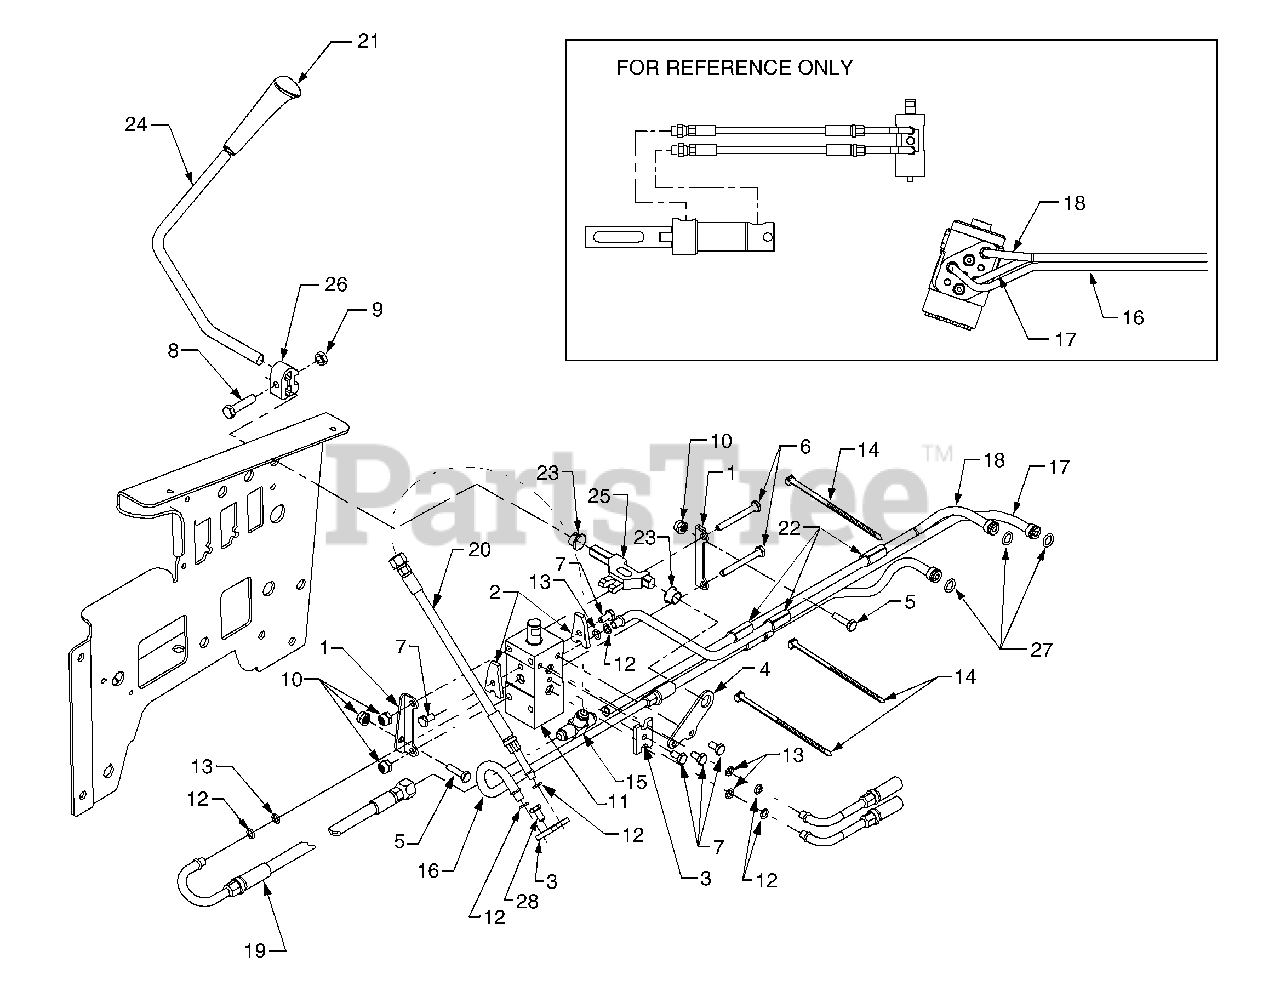 [DIAGRAM] Farmall Cub Hydraulic Parts Diagram FULL Version